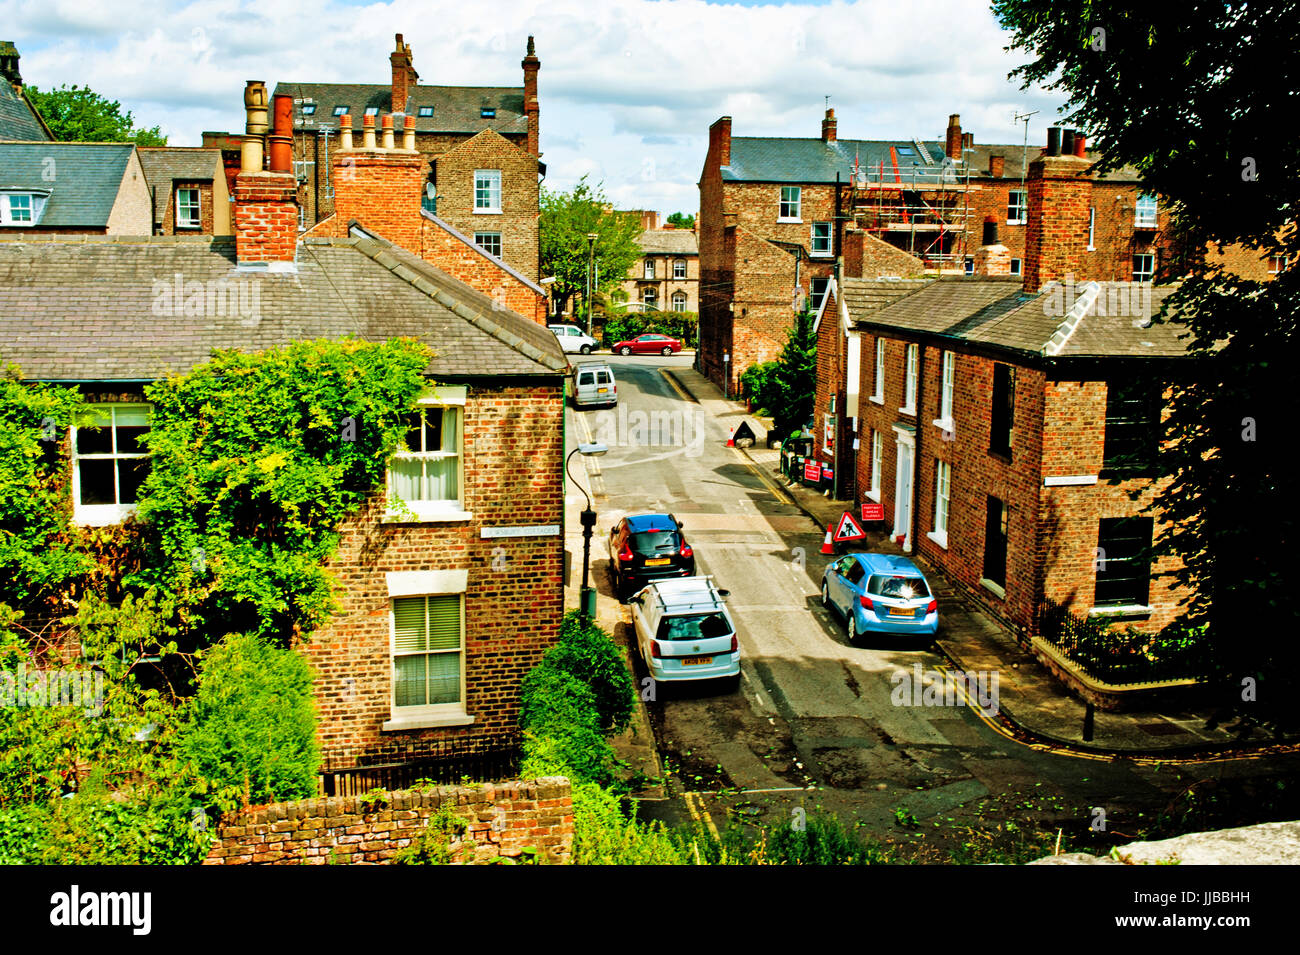 Dewsbury cottages from city wall, York - Stock Image